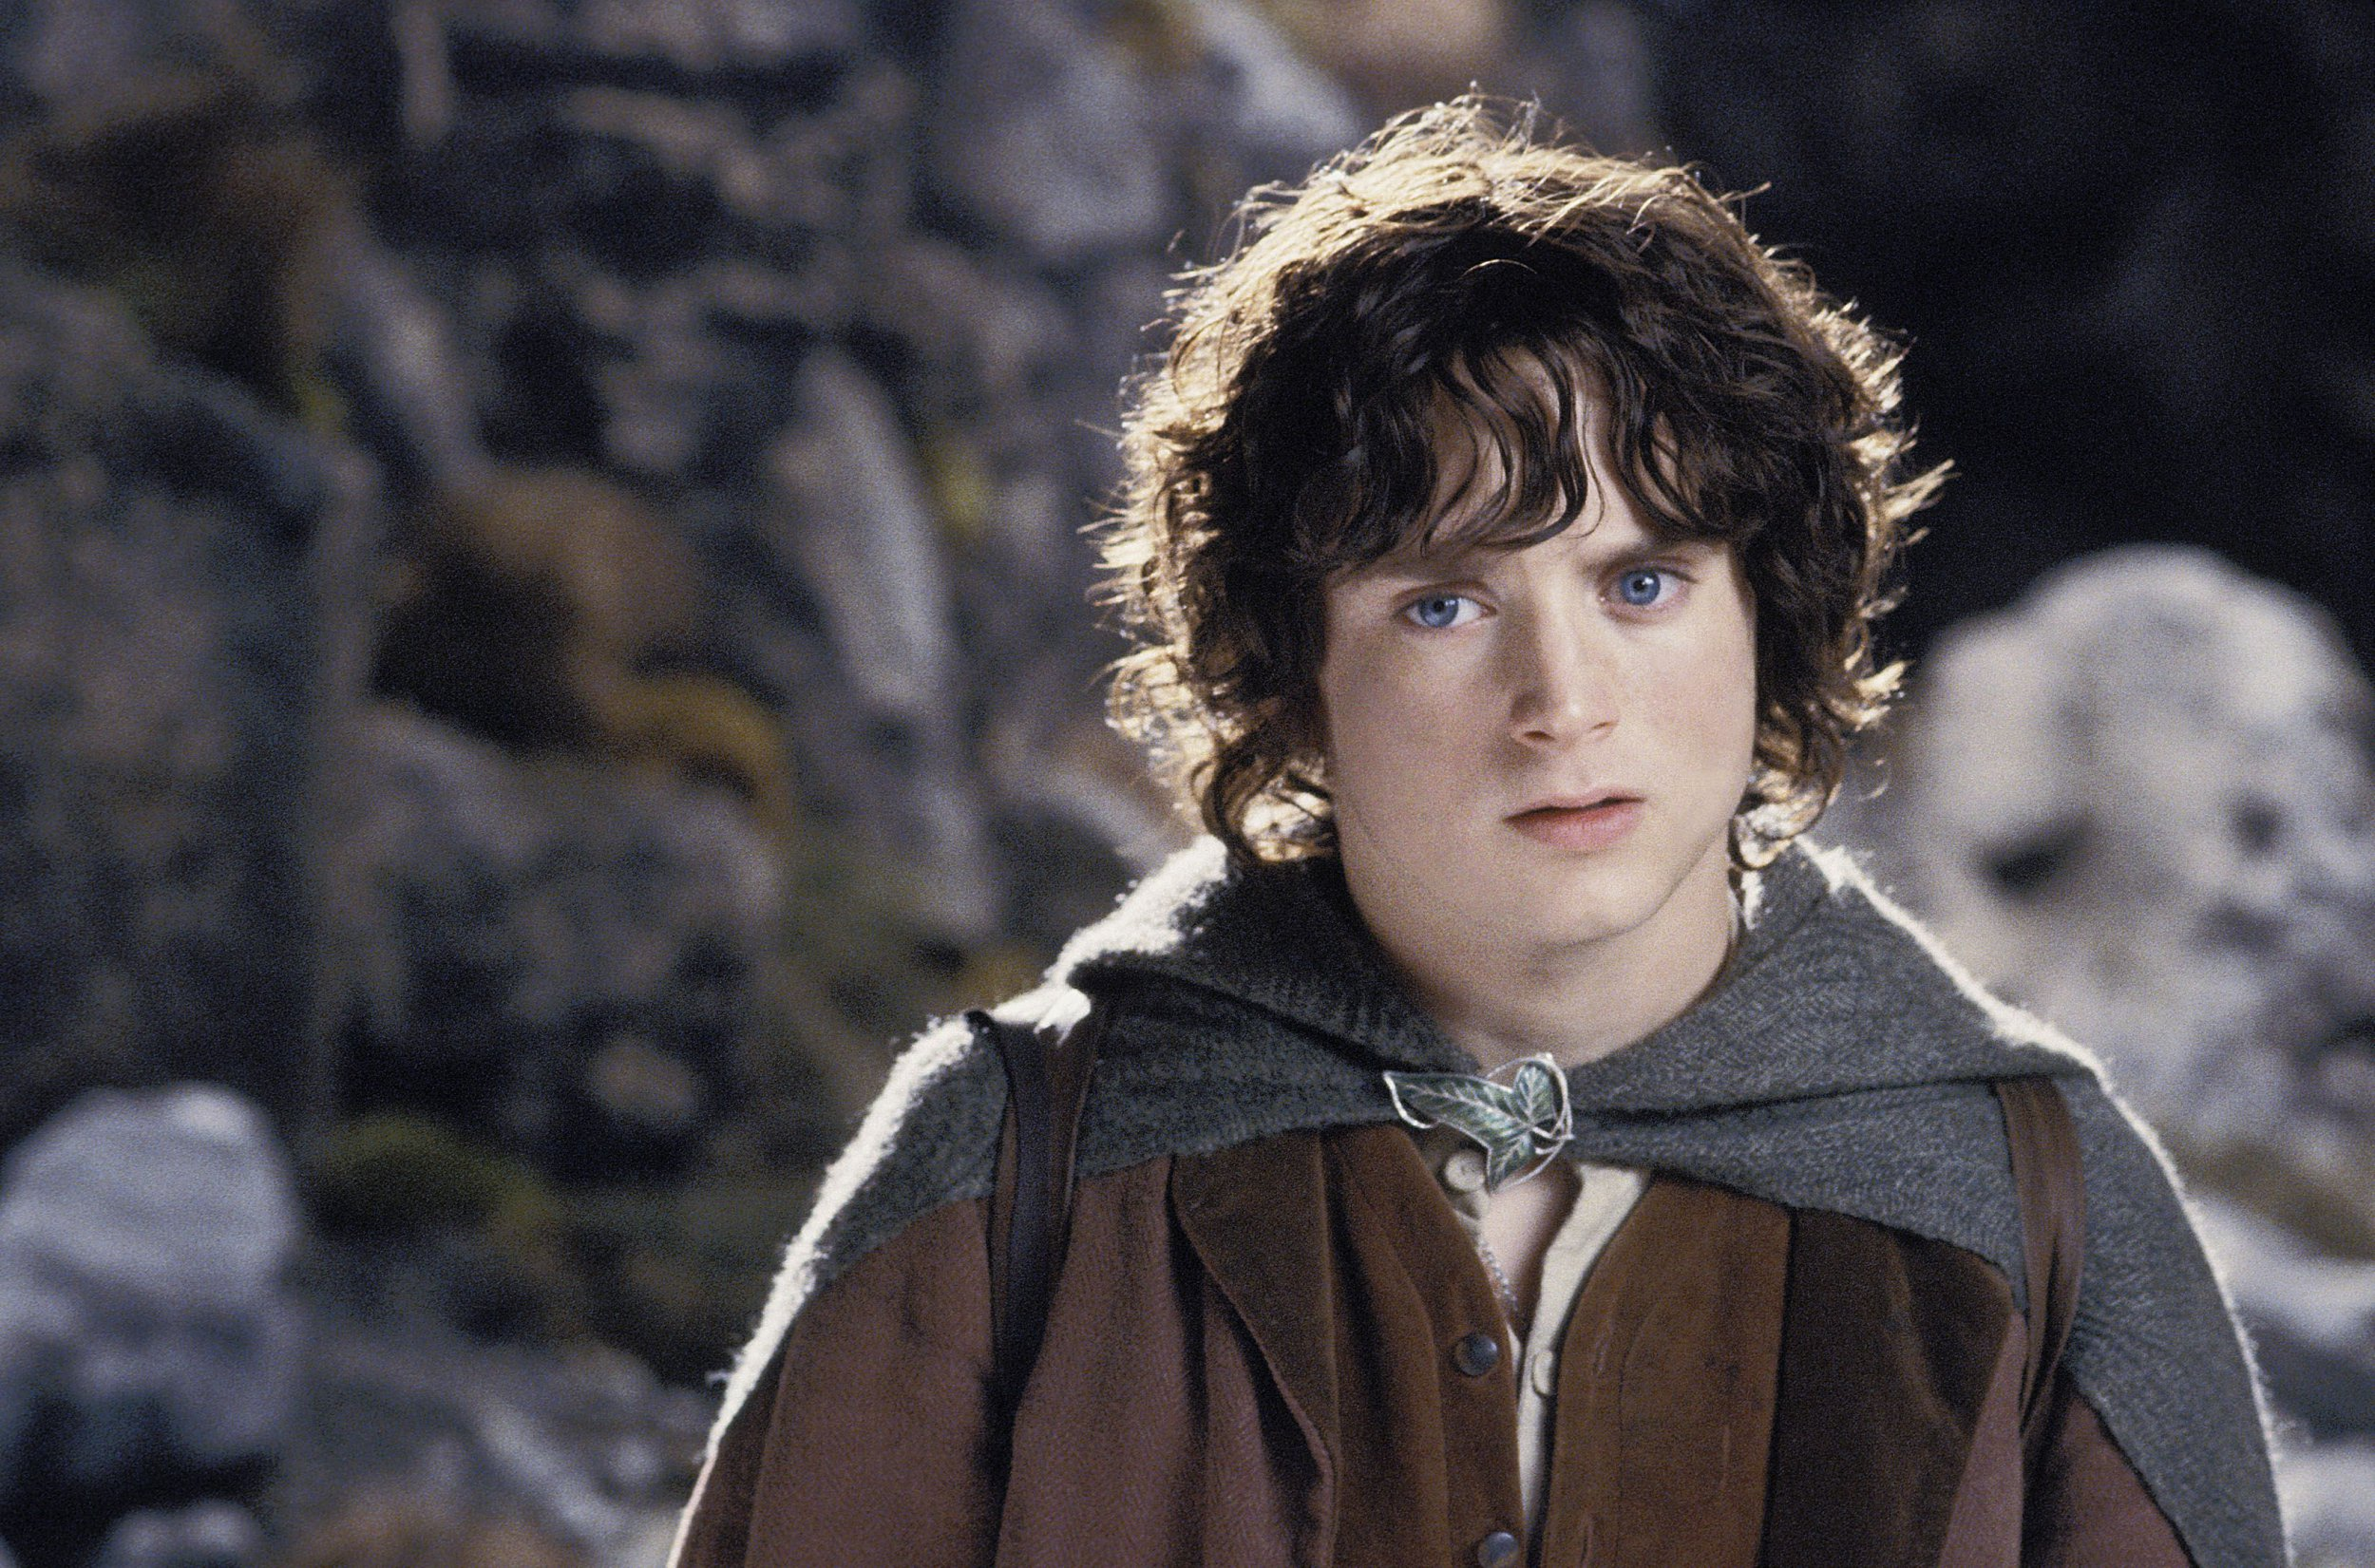 Elijah Wood as Frodo Baggins in Lord of The Rings